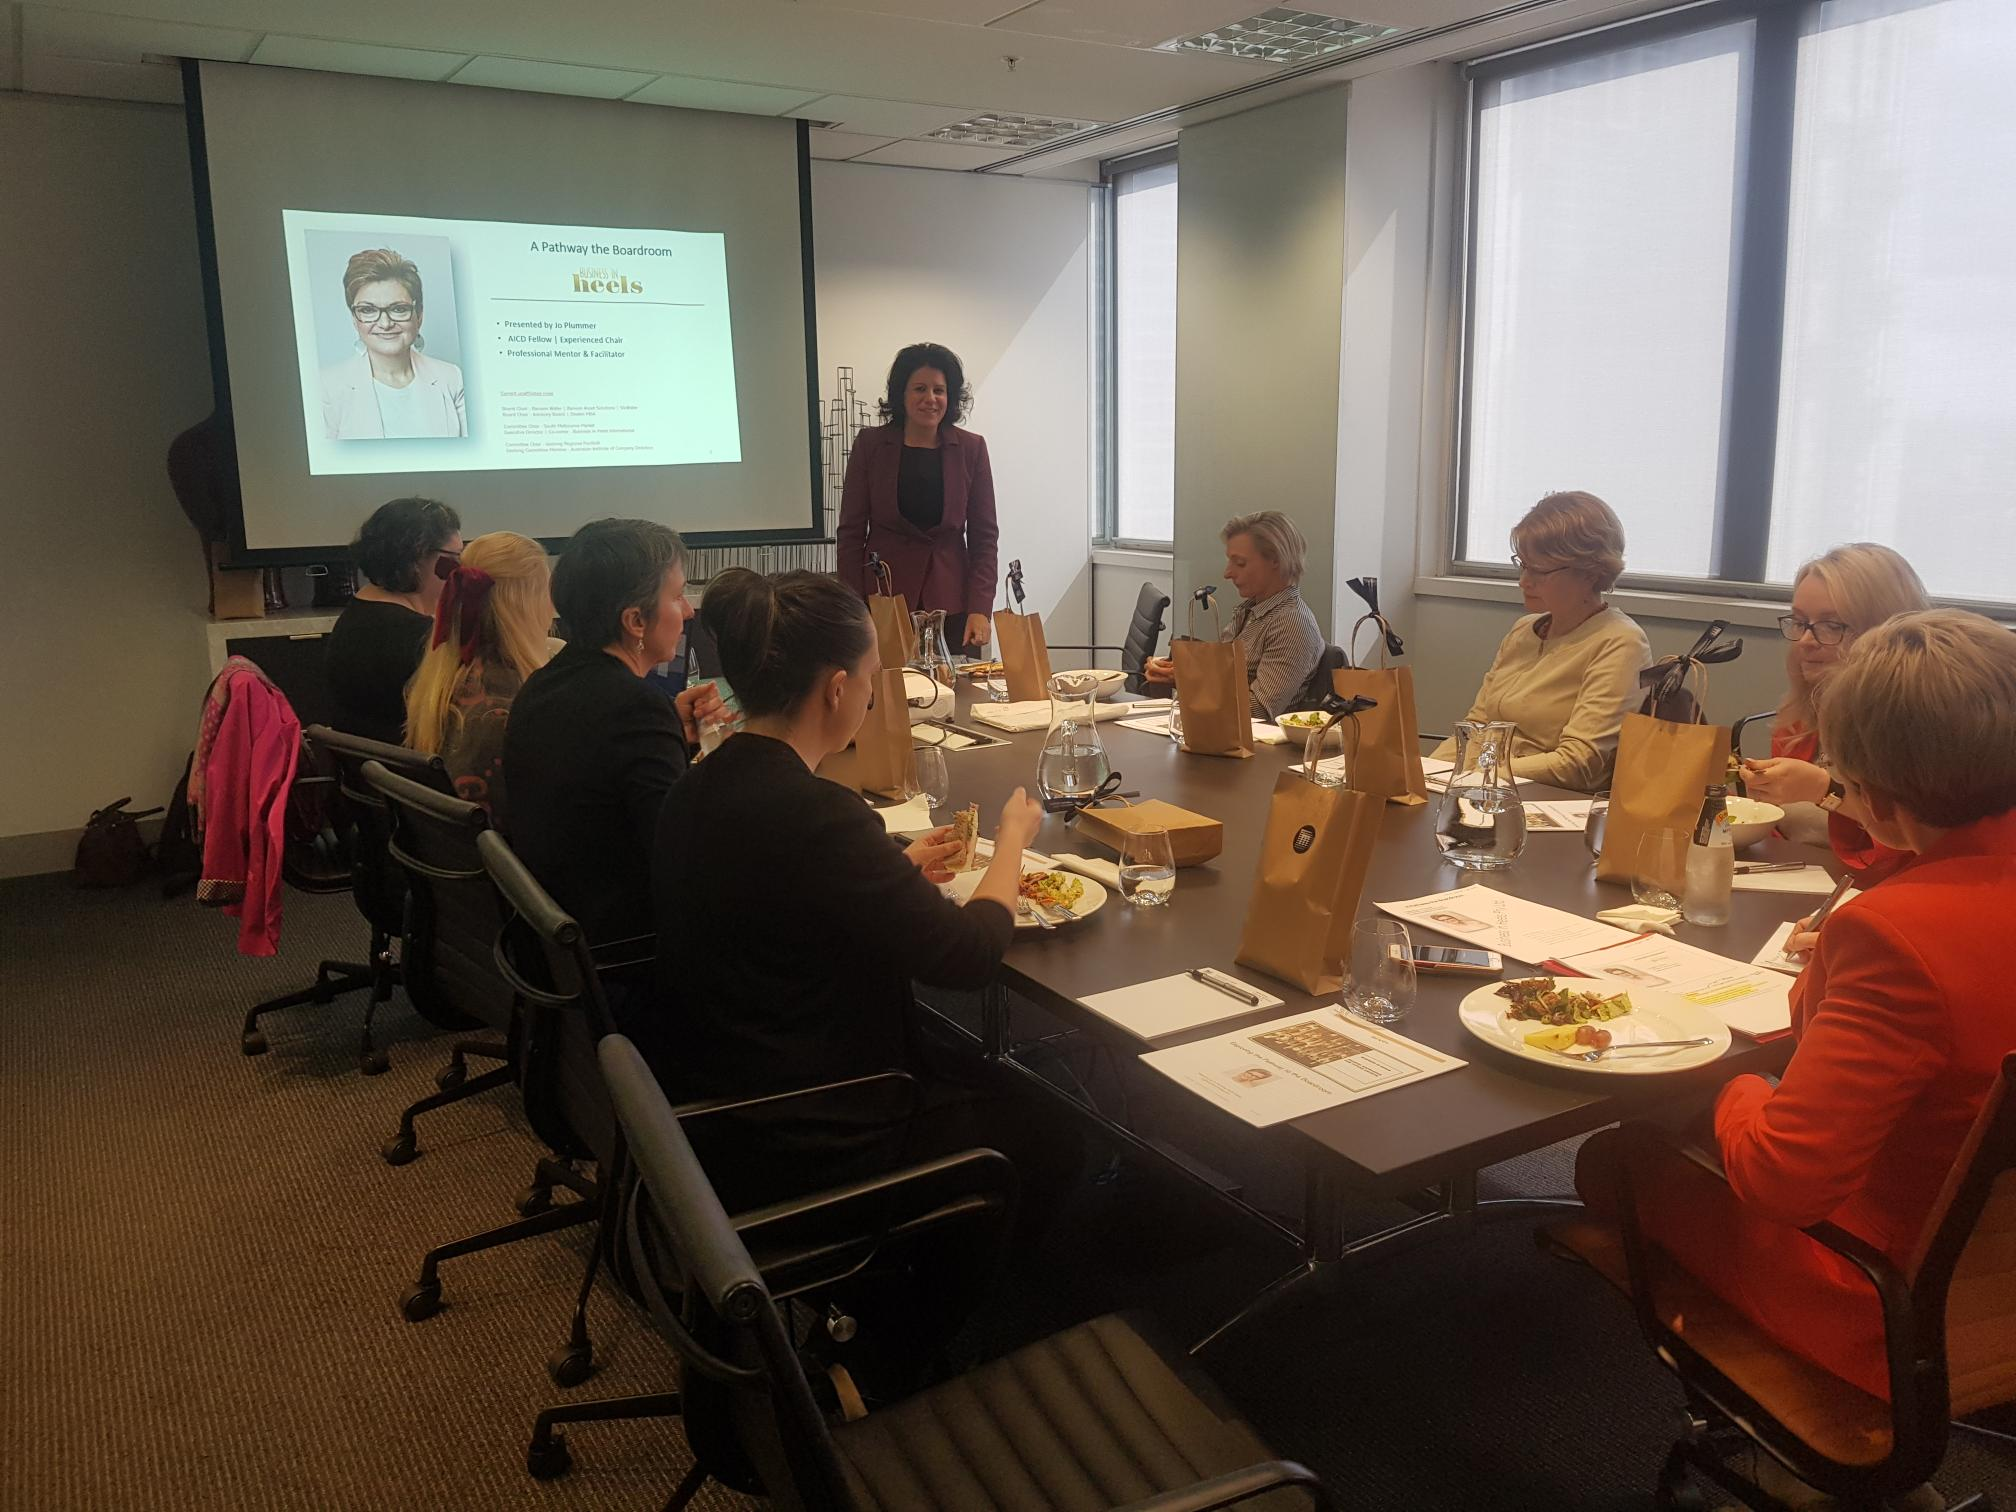 Nicolina Lademann presents at the Pathway to the Boardroom workshop